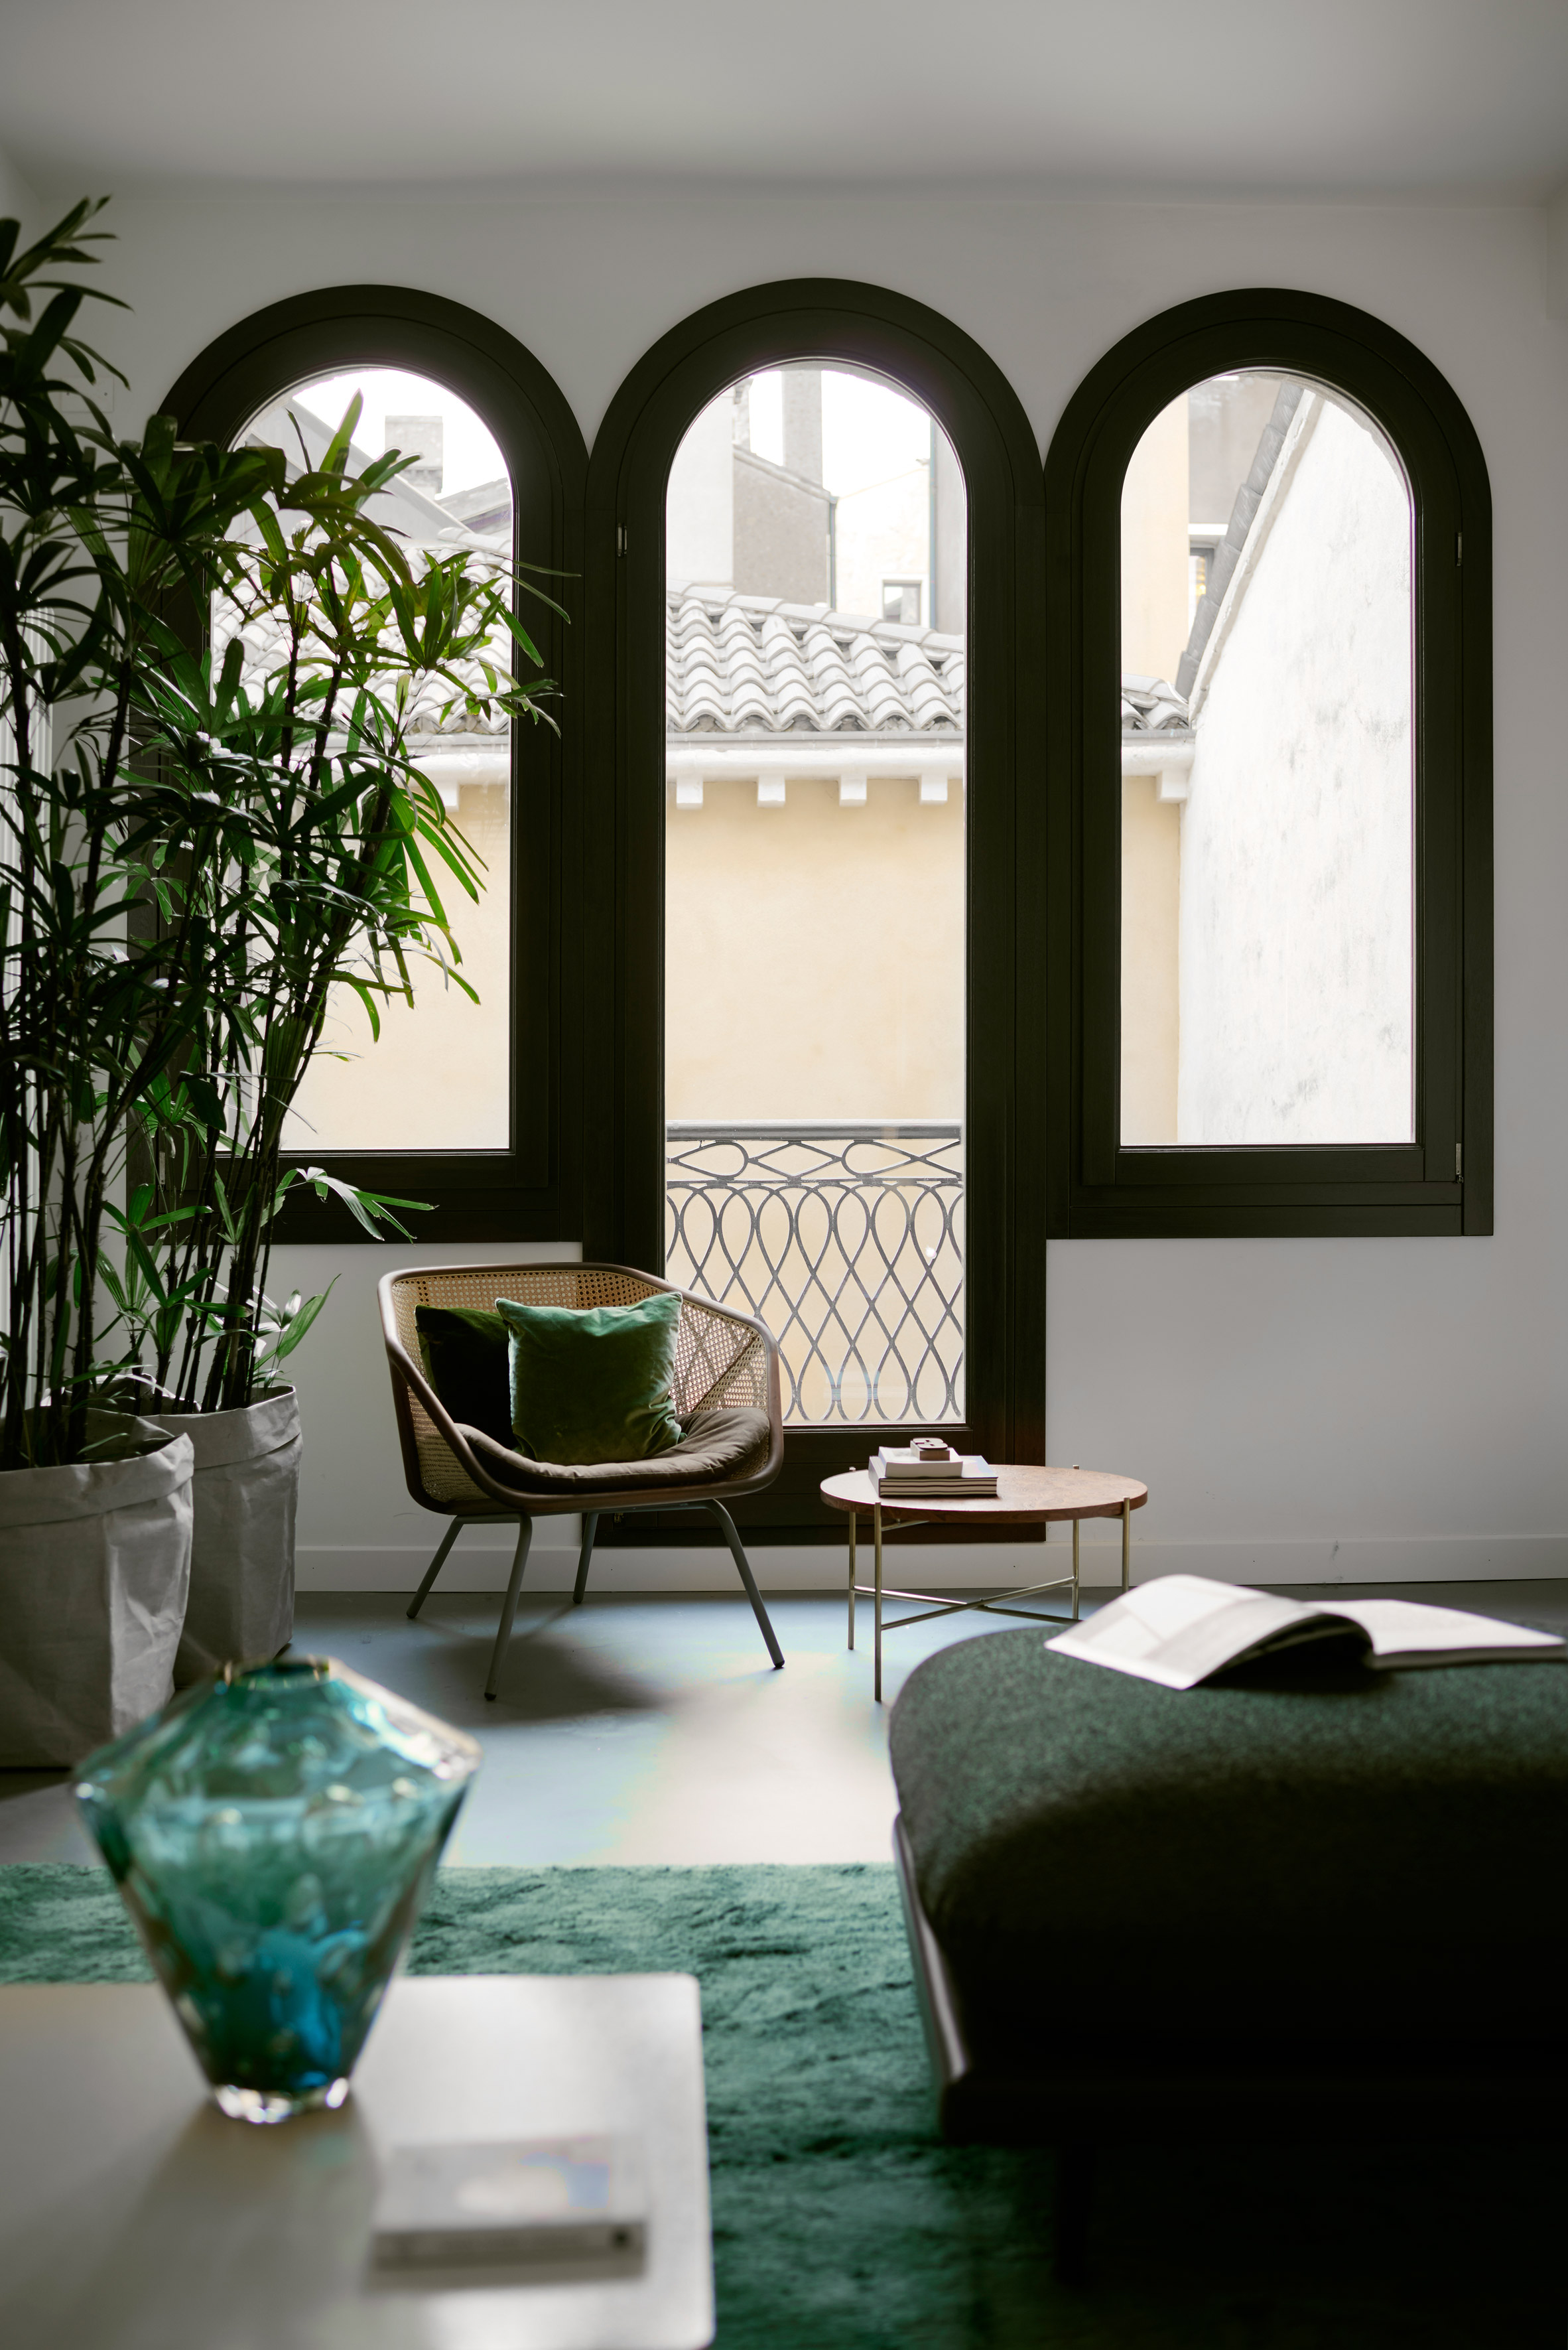 Modern furniture reinvents this traditional Venetian apartment